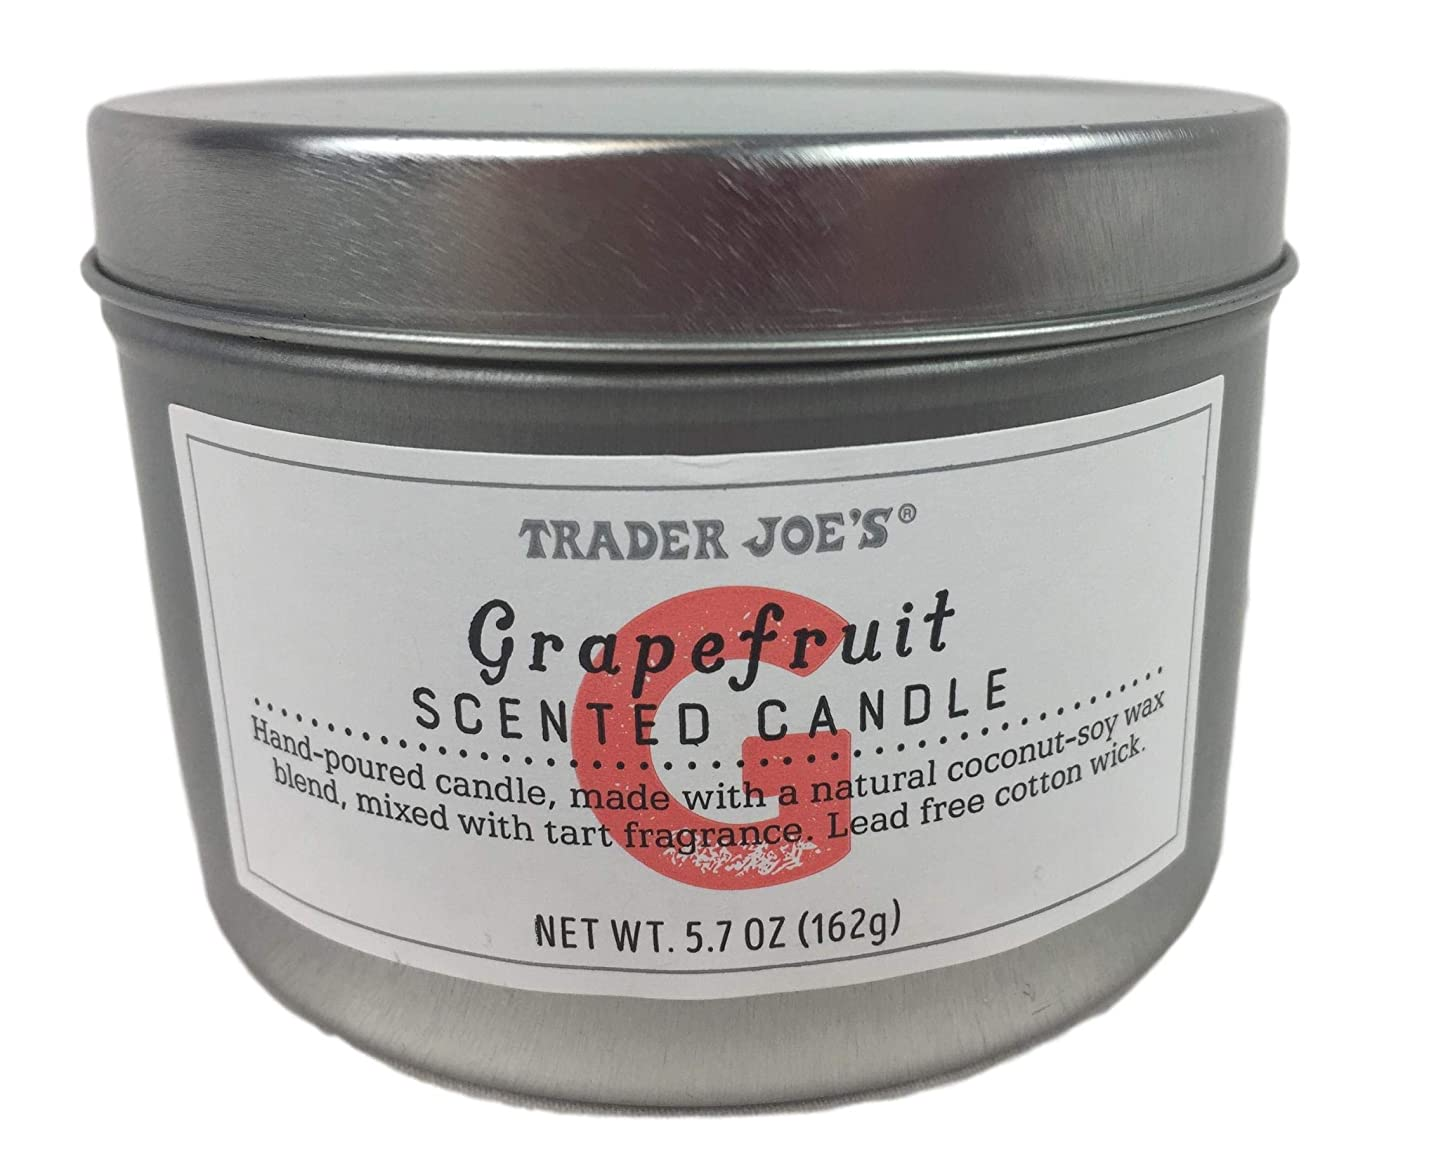 体操選手低い頼むTrader Joe's Grapefruit Scented Candle NET WT 170ml (162g)